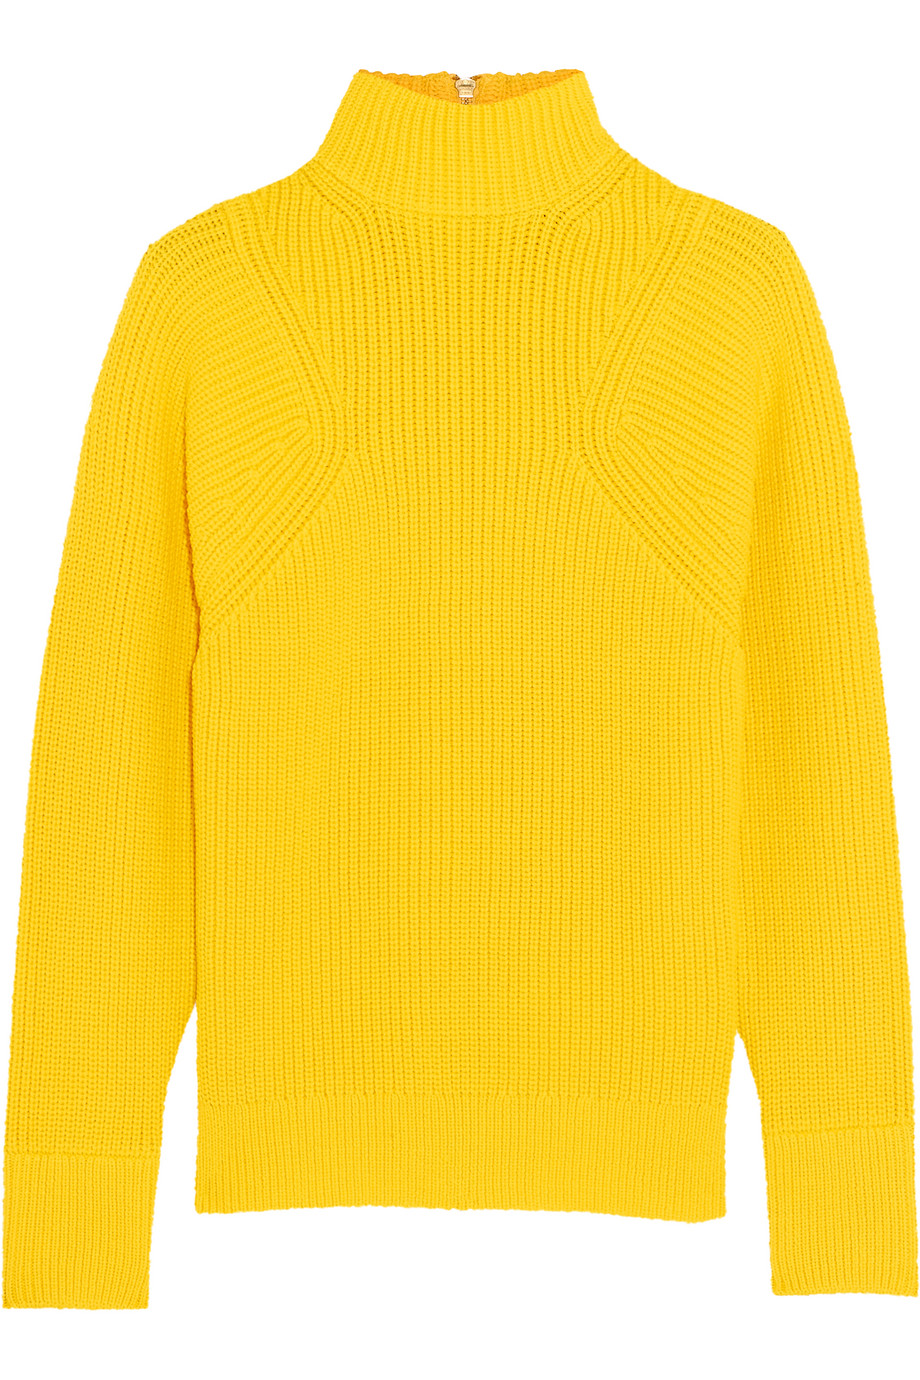 J.Crew Howden Knitted Turtleneck Sweater, Yellow, Women's